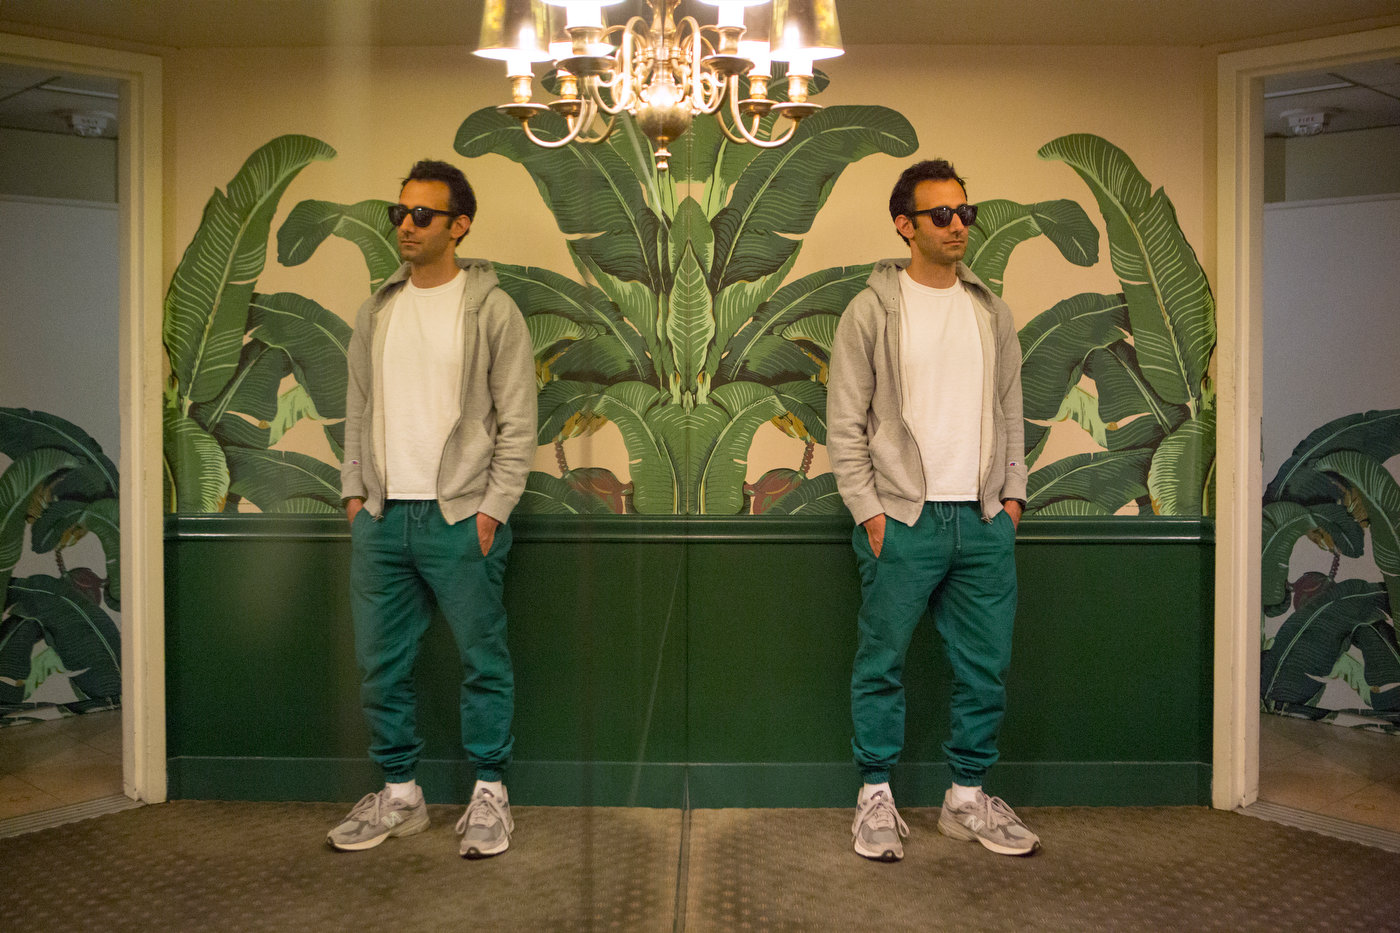 Artist Alex Israel, Beverly Hills Hotel, Los Angeles (for The Good Life).